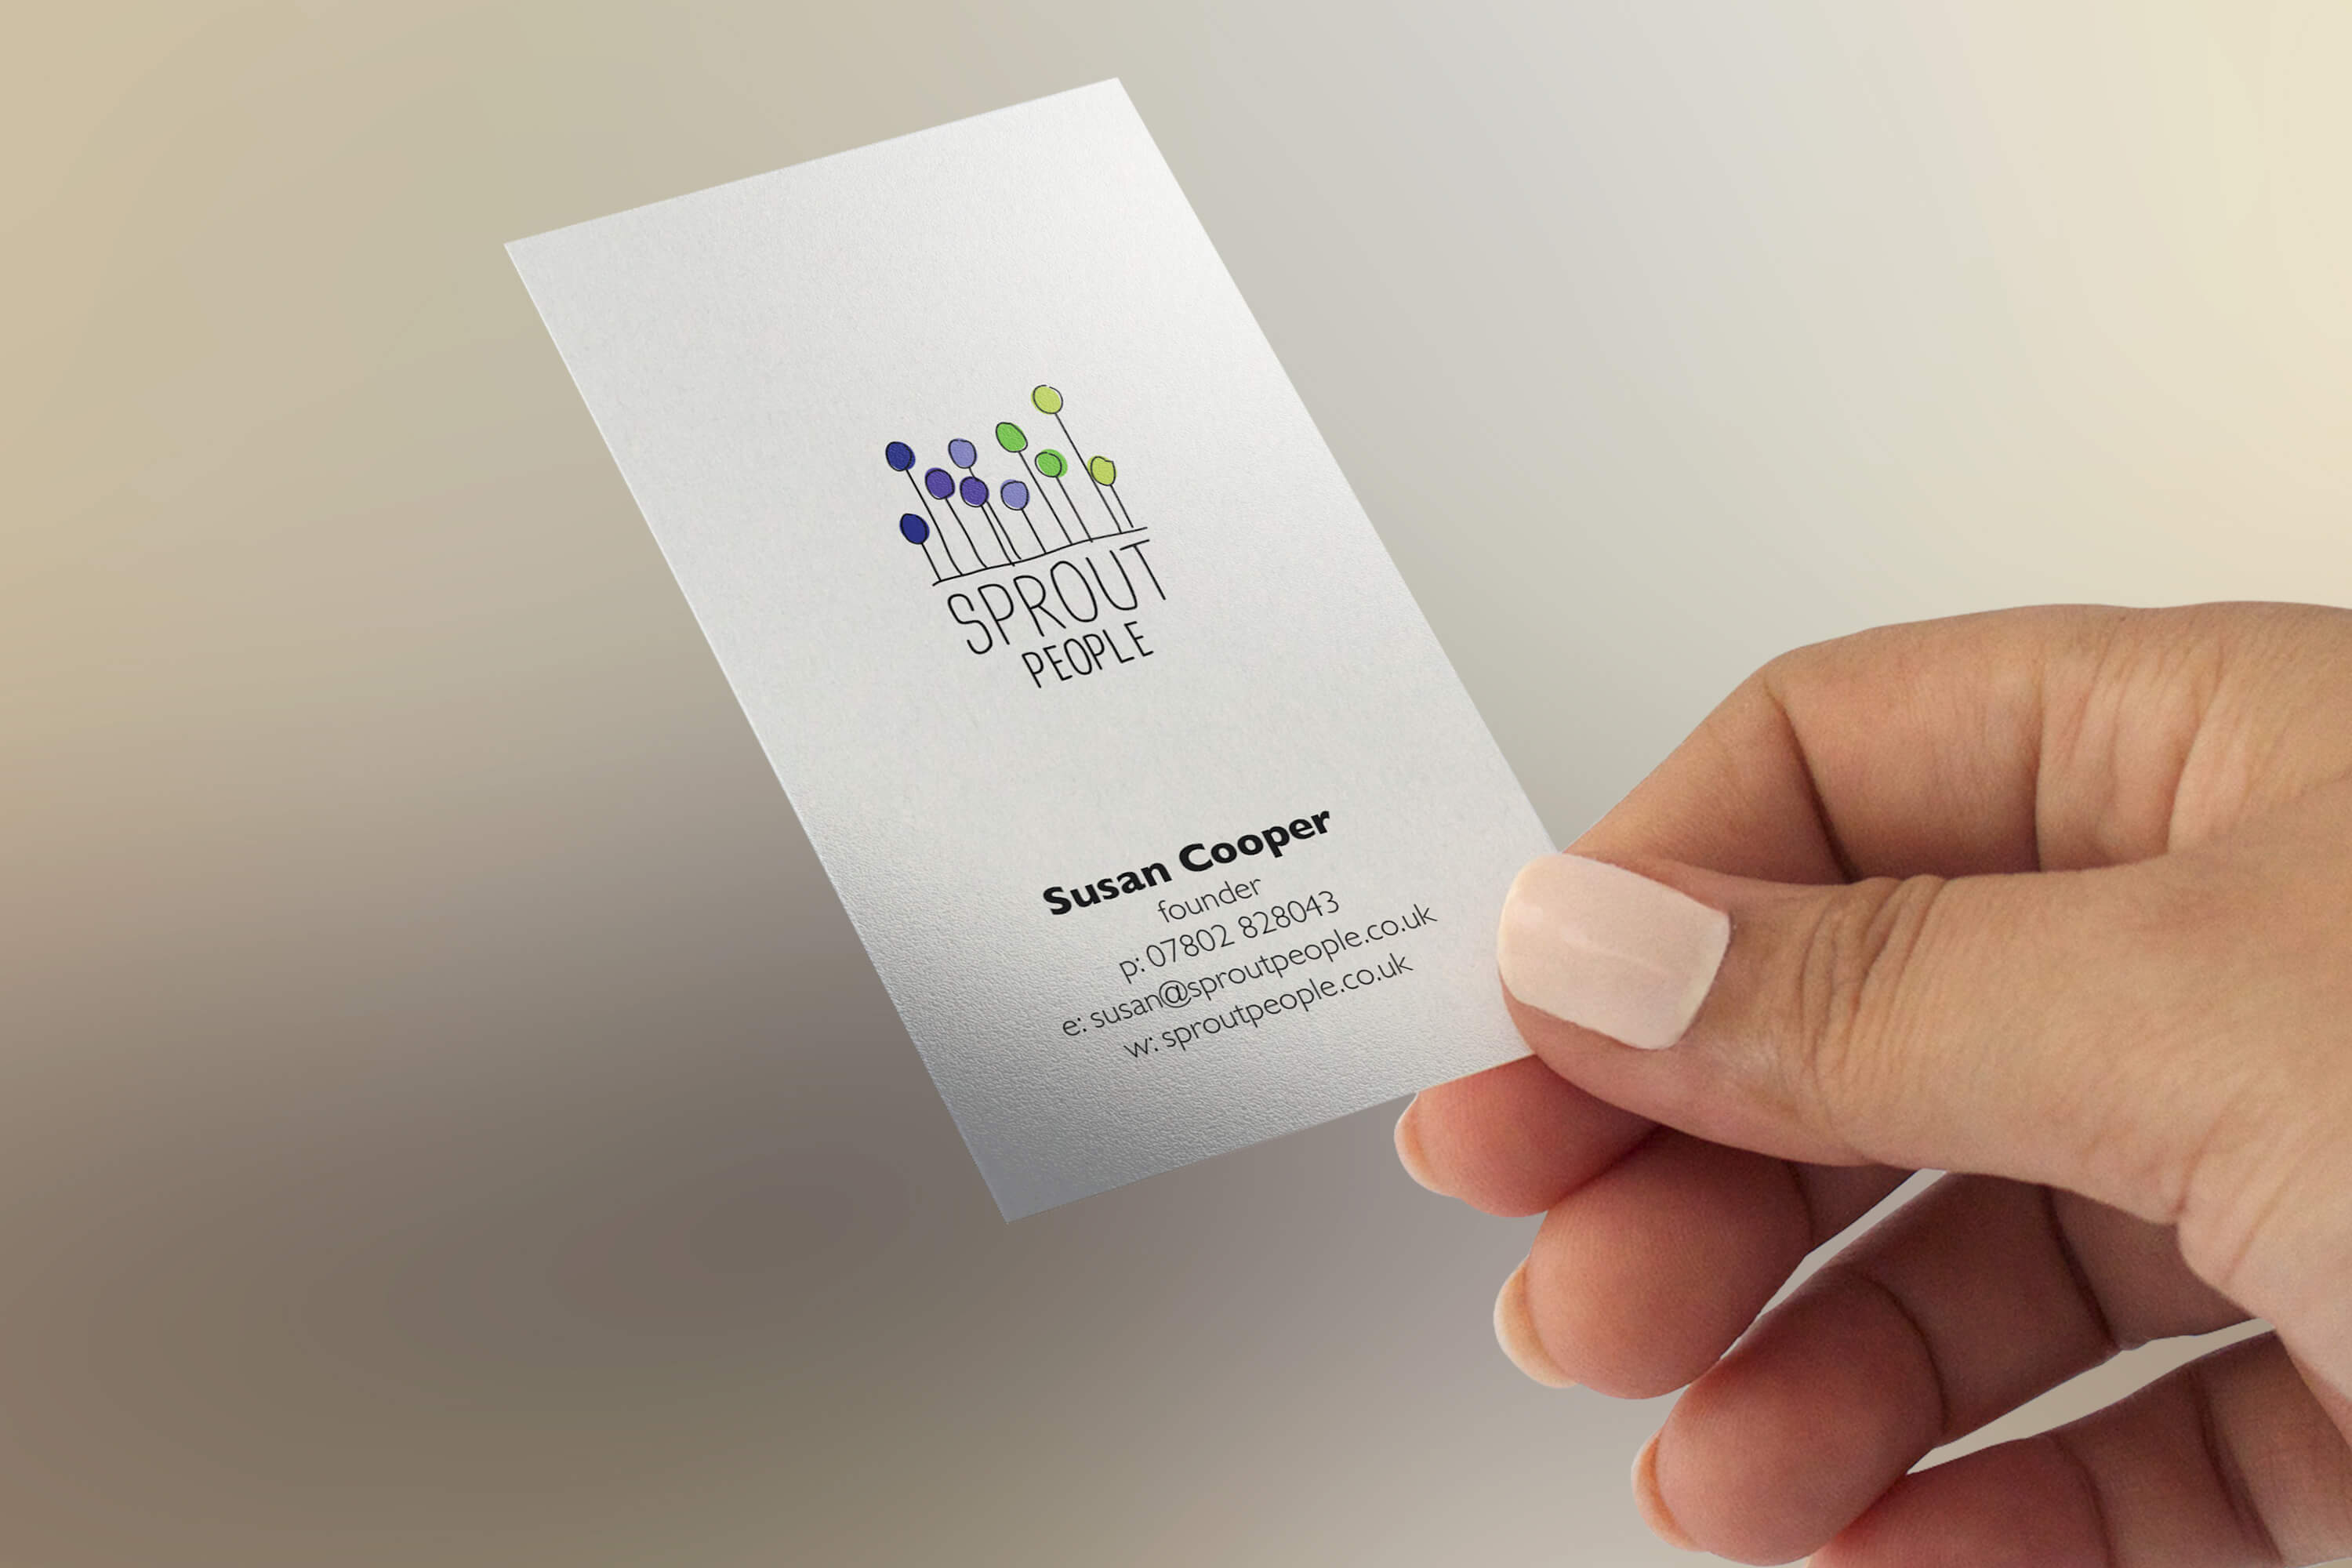 A woman's hand holding a copy of the Sprout People business card design